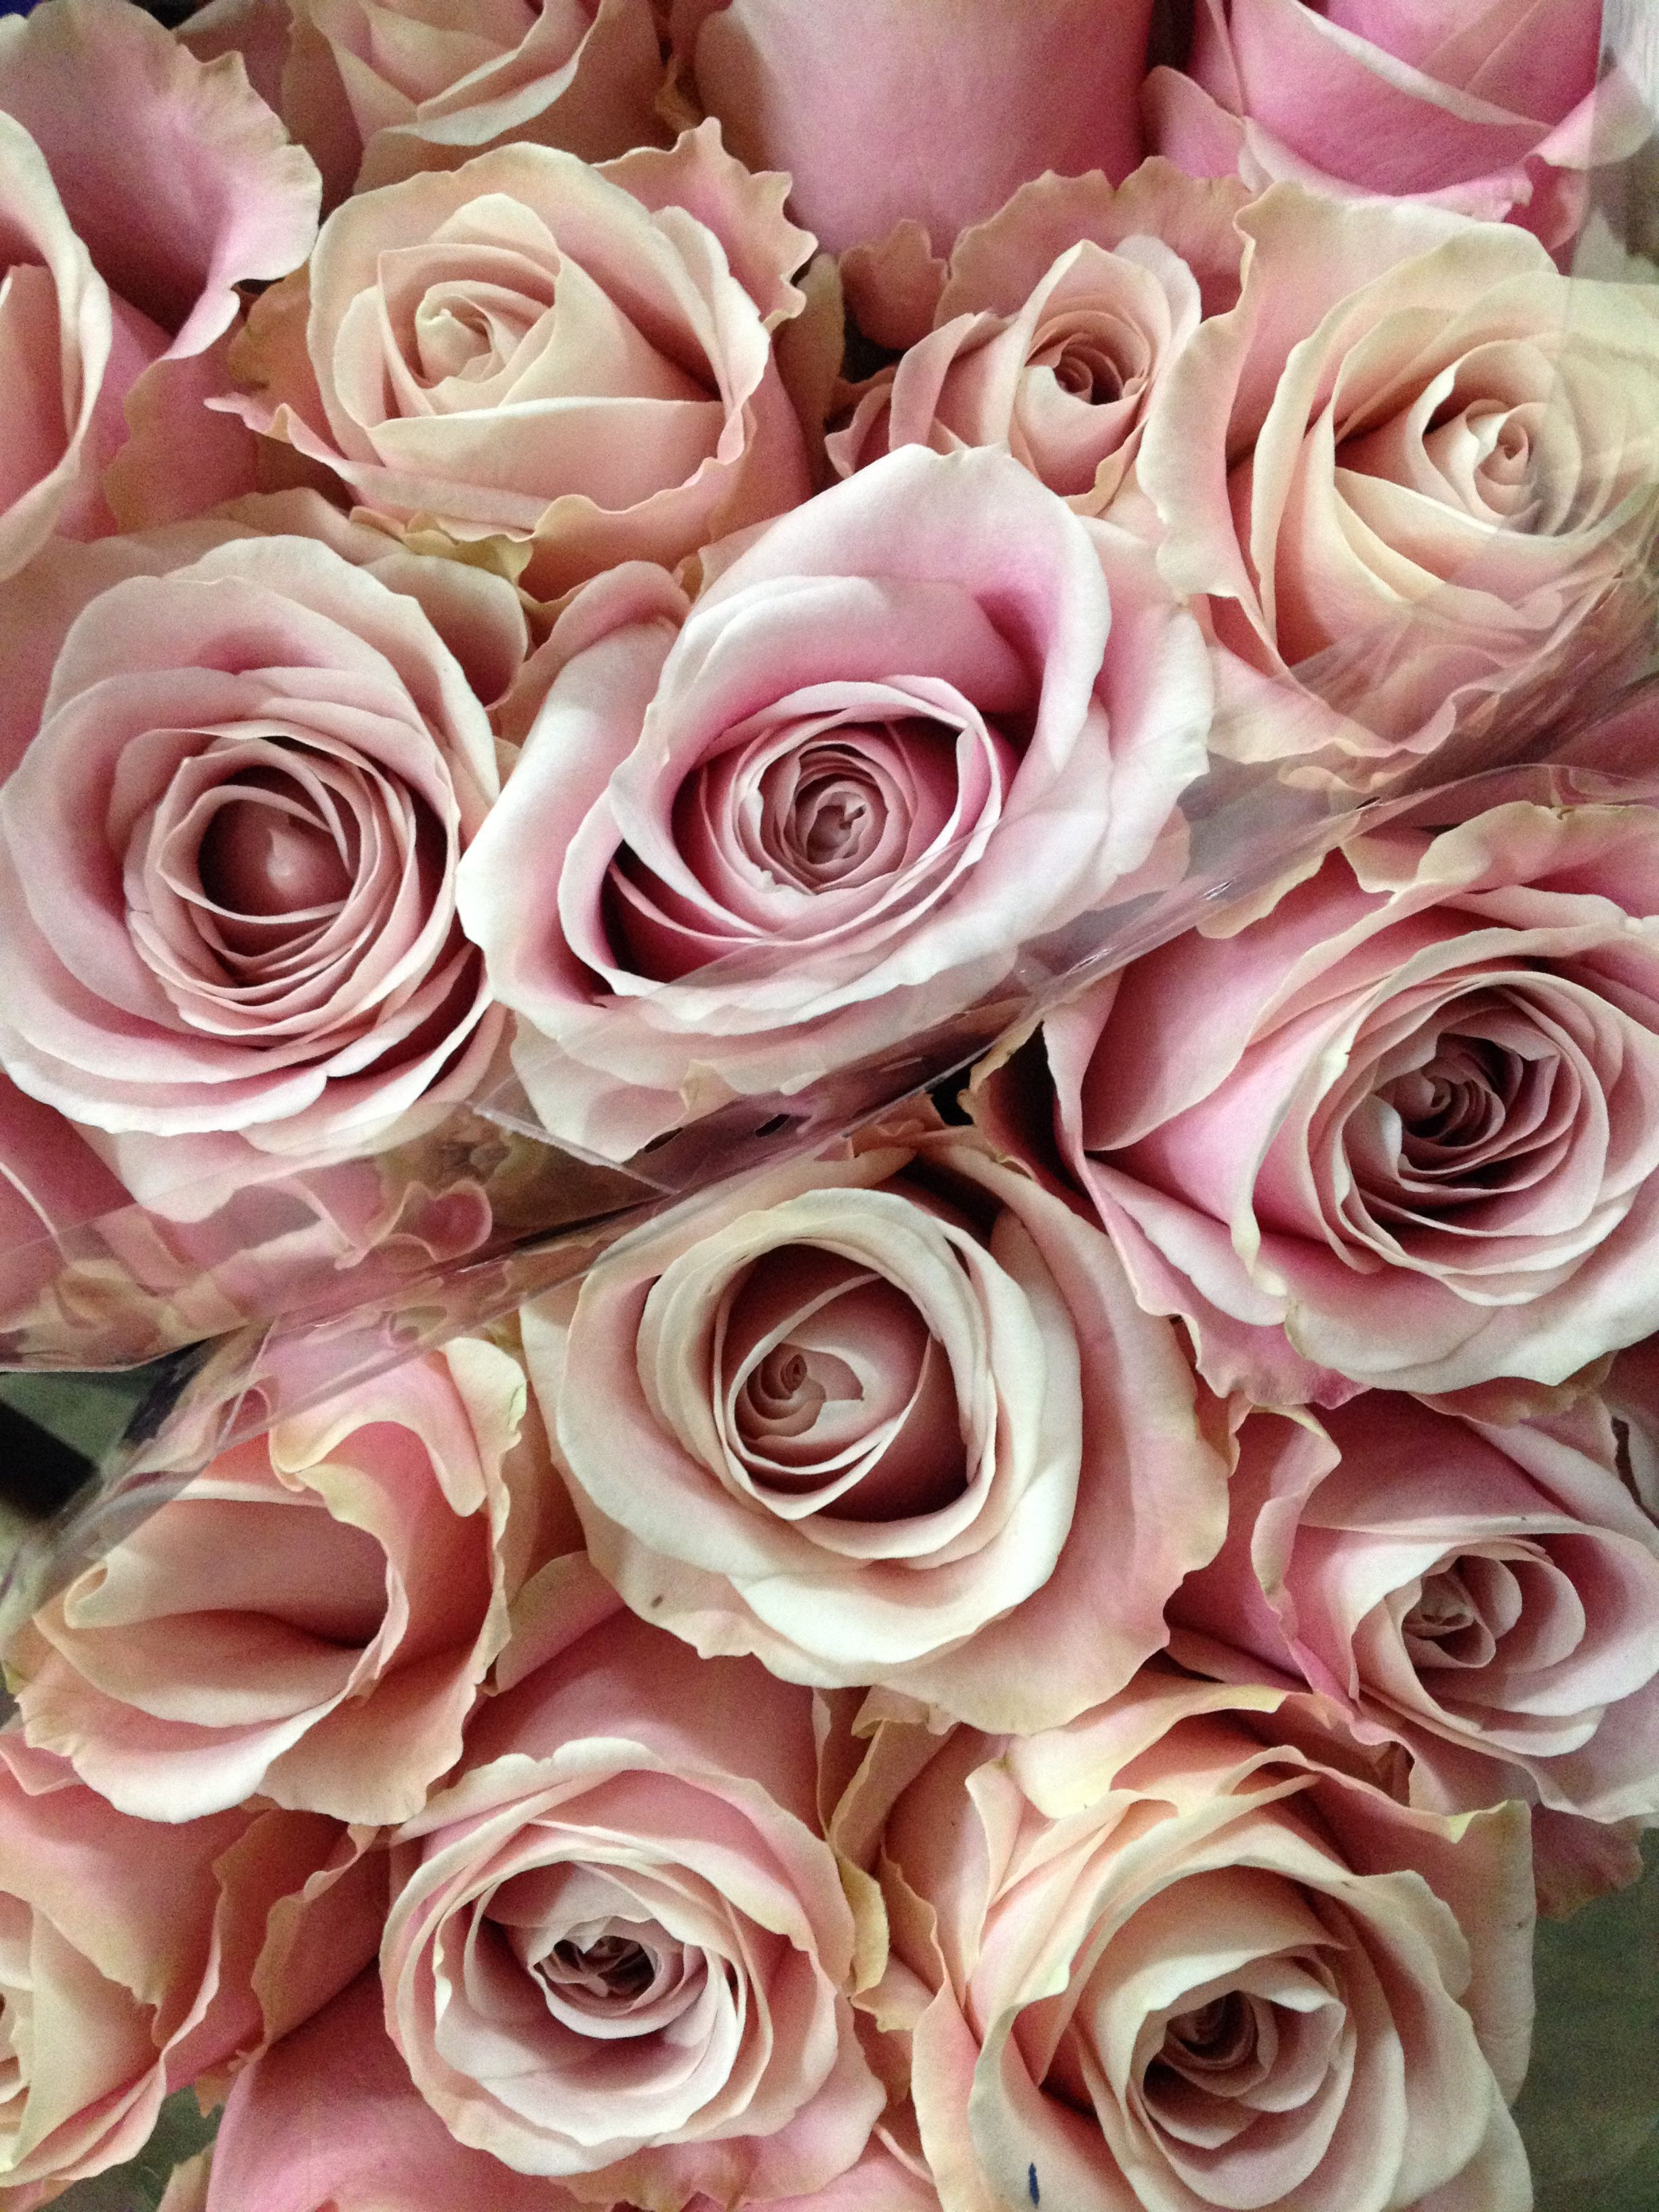 bubble vase bulk of pink avalanche rose sold in bunches of 20 stems from the regarding sold in bunches of 20 stems from the flowermonger the wholesale floral home delivery service